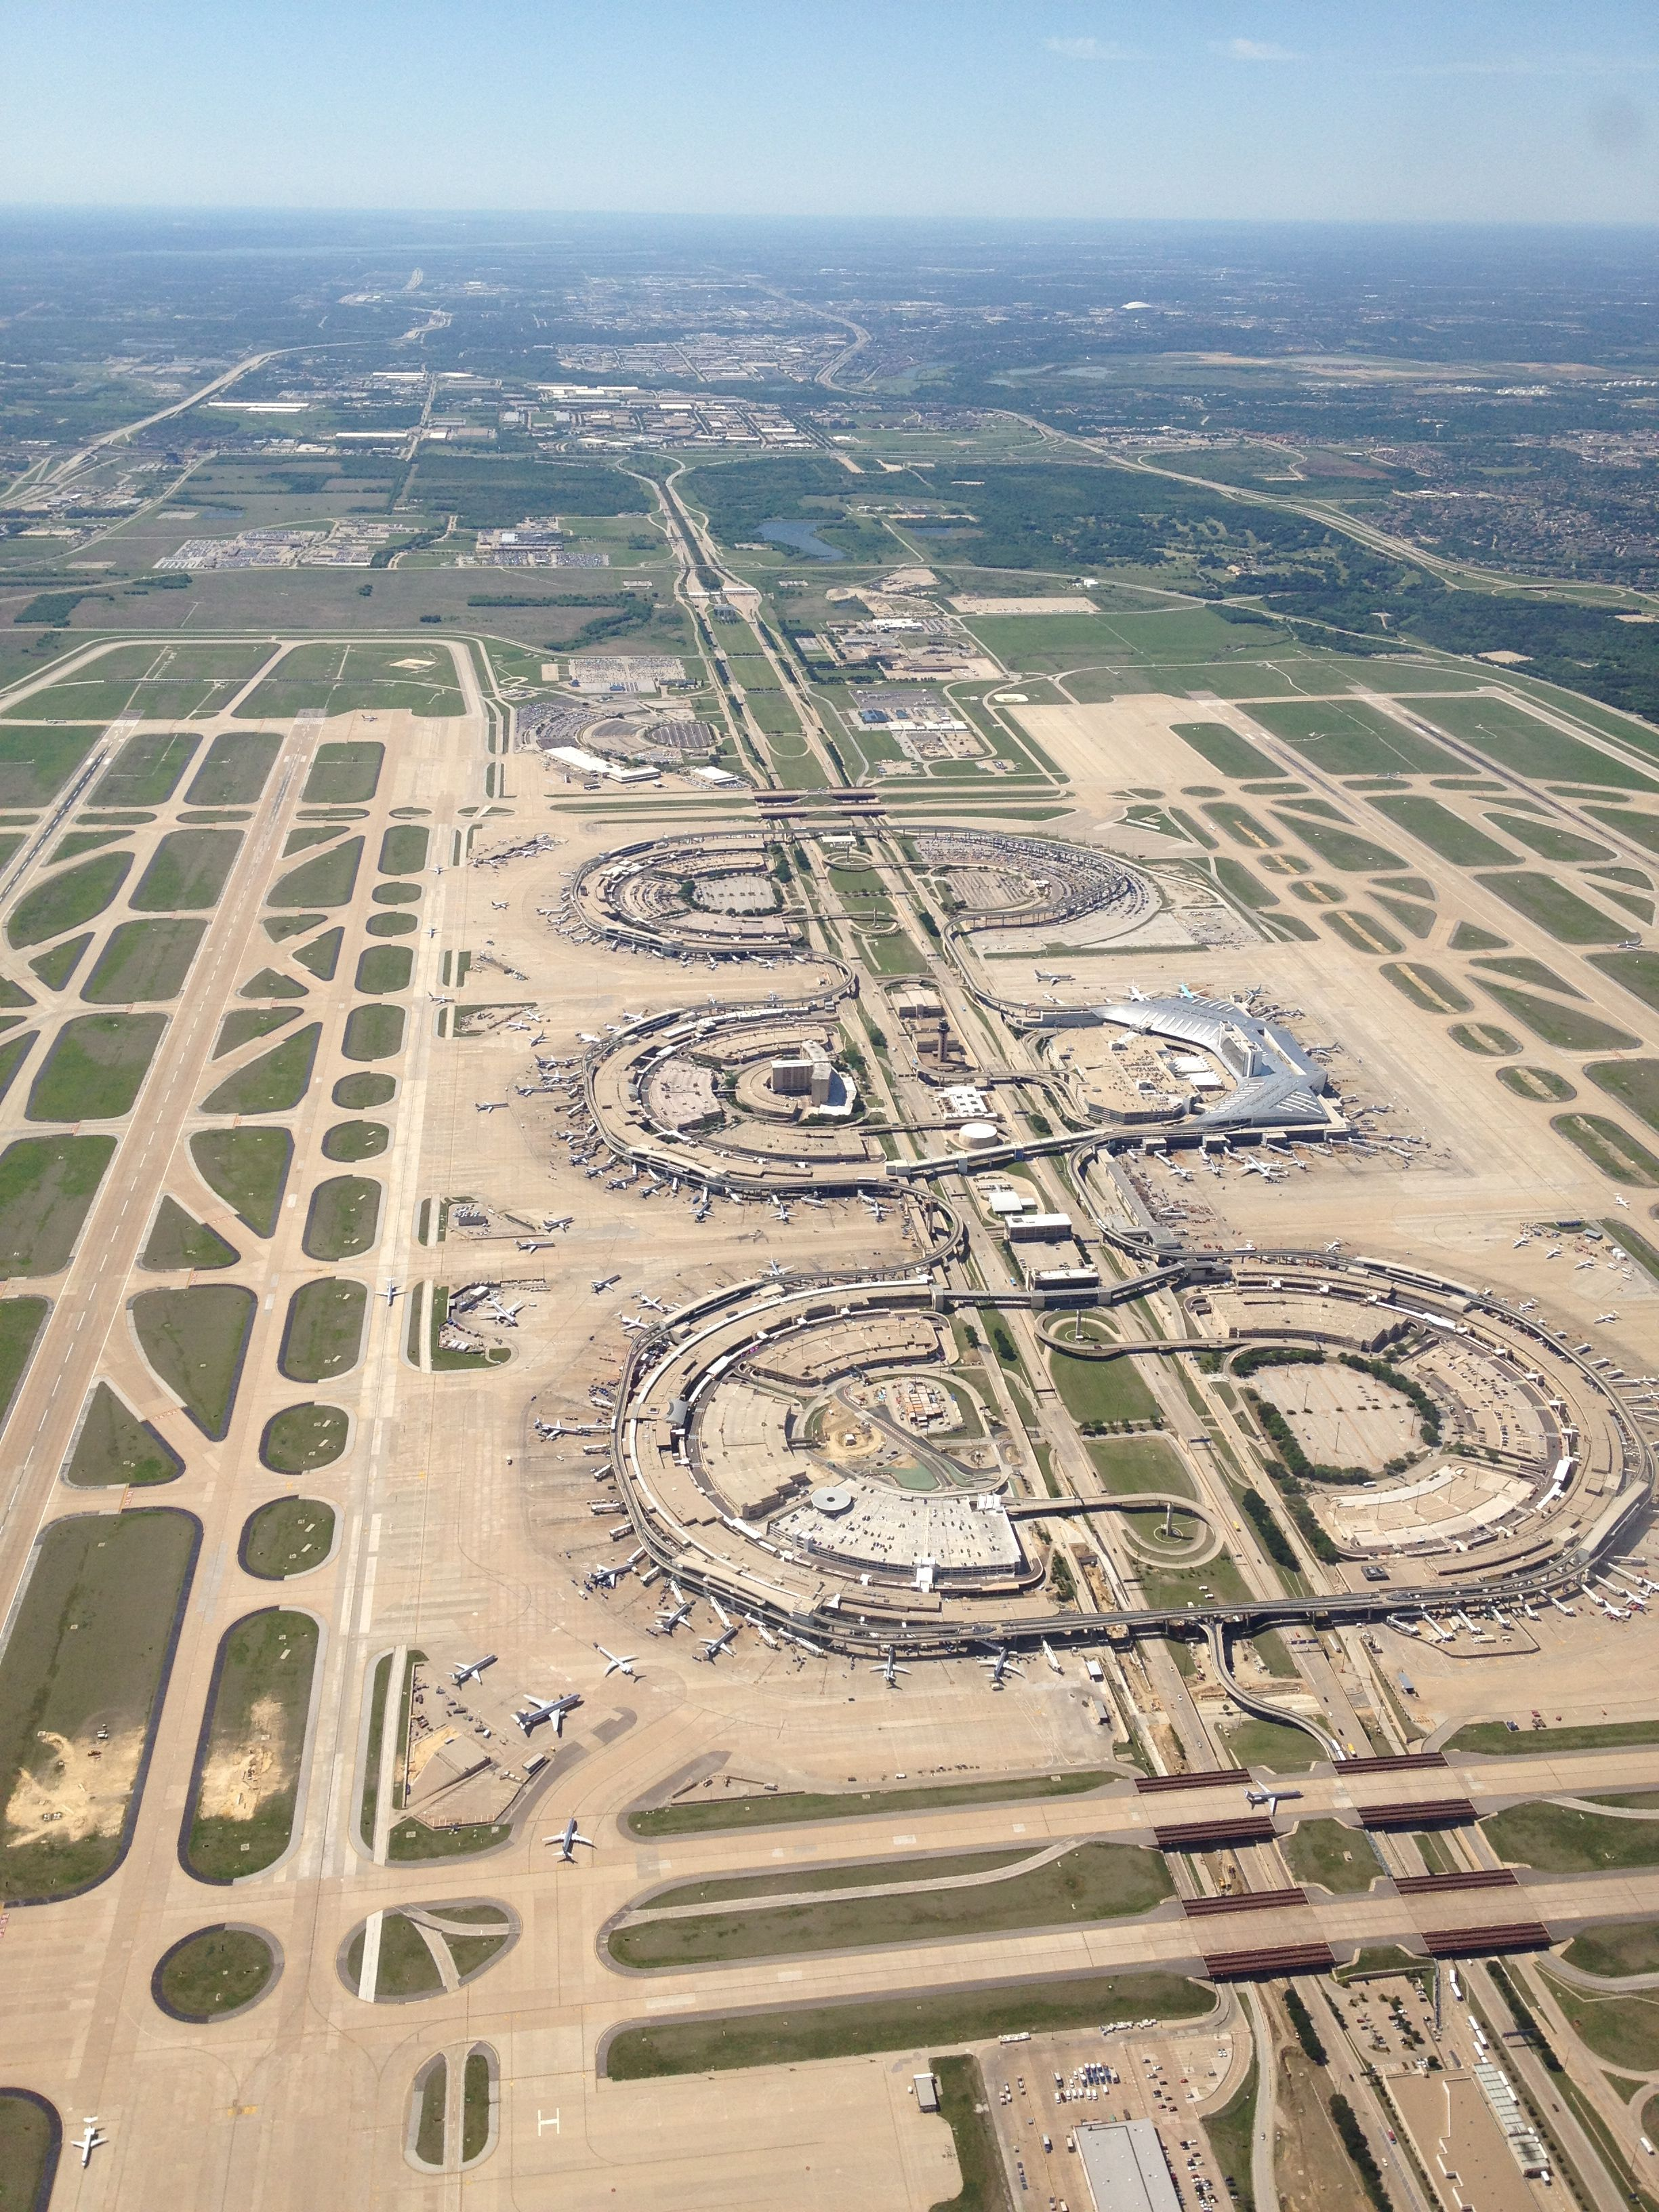 DFW Airport opened in 1974 My buddies and I went there